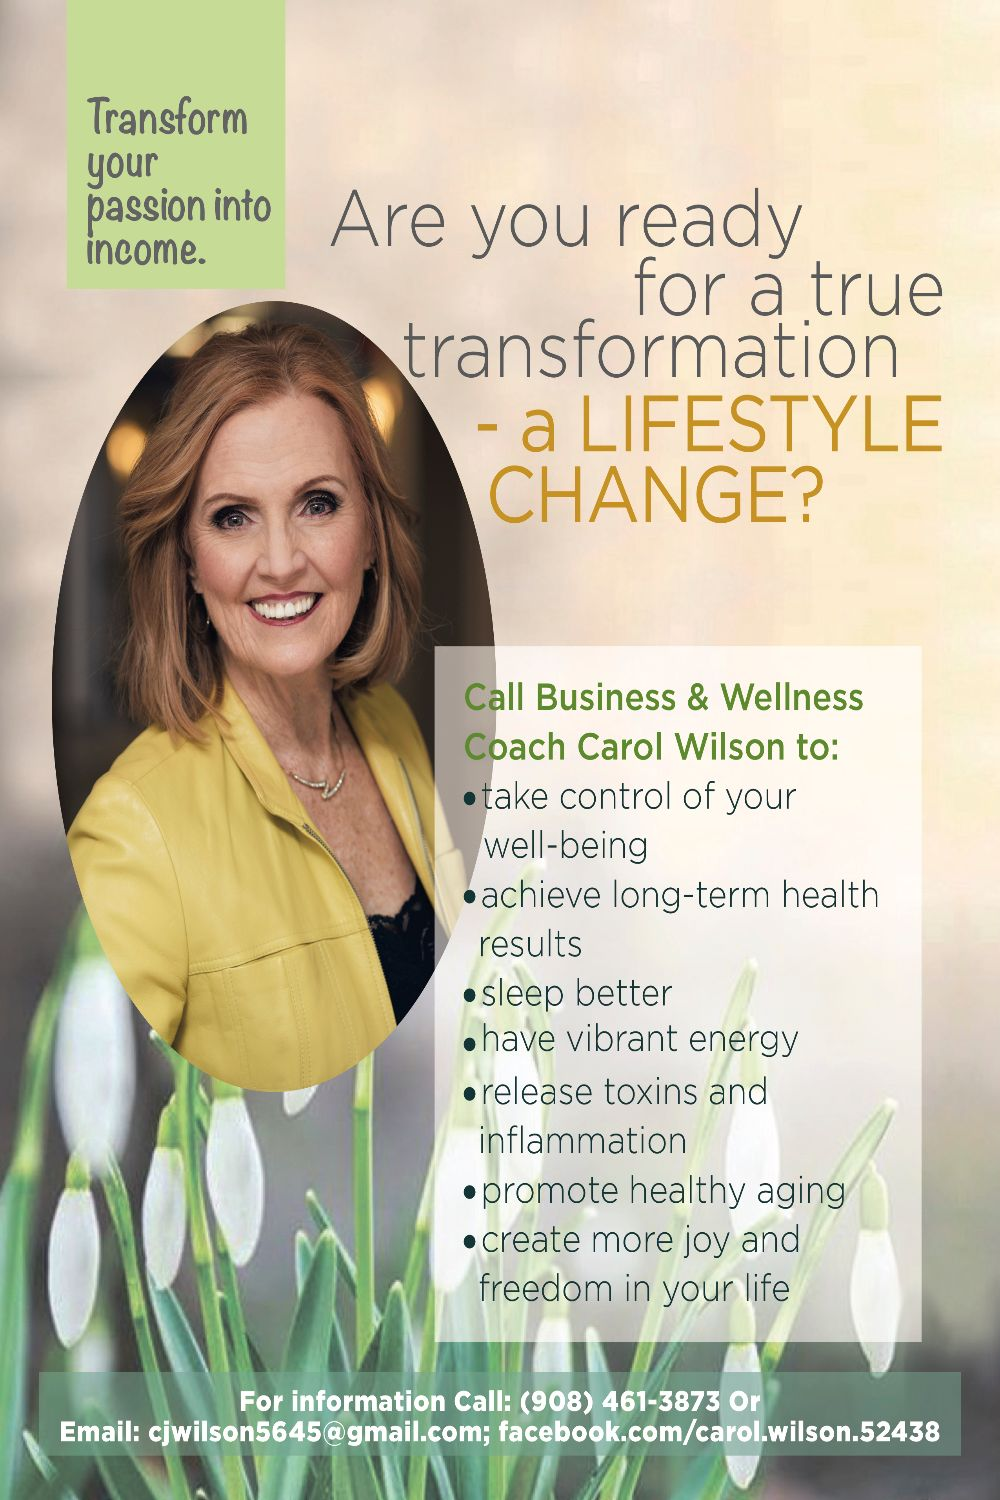 Carol Wilson – Wellness & Lifestyle Coach